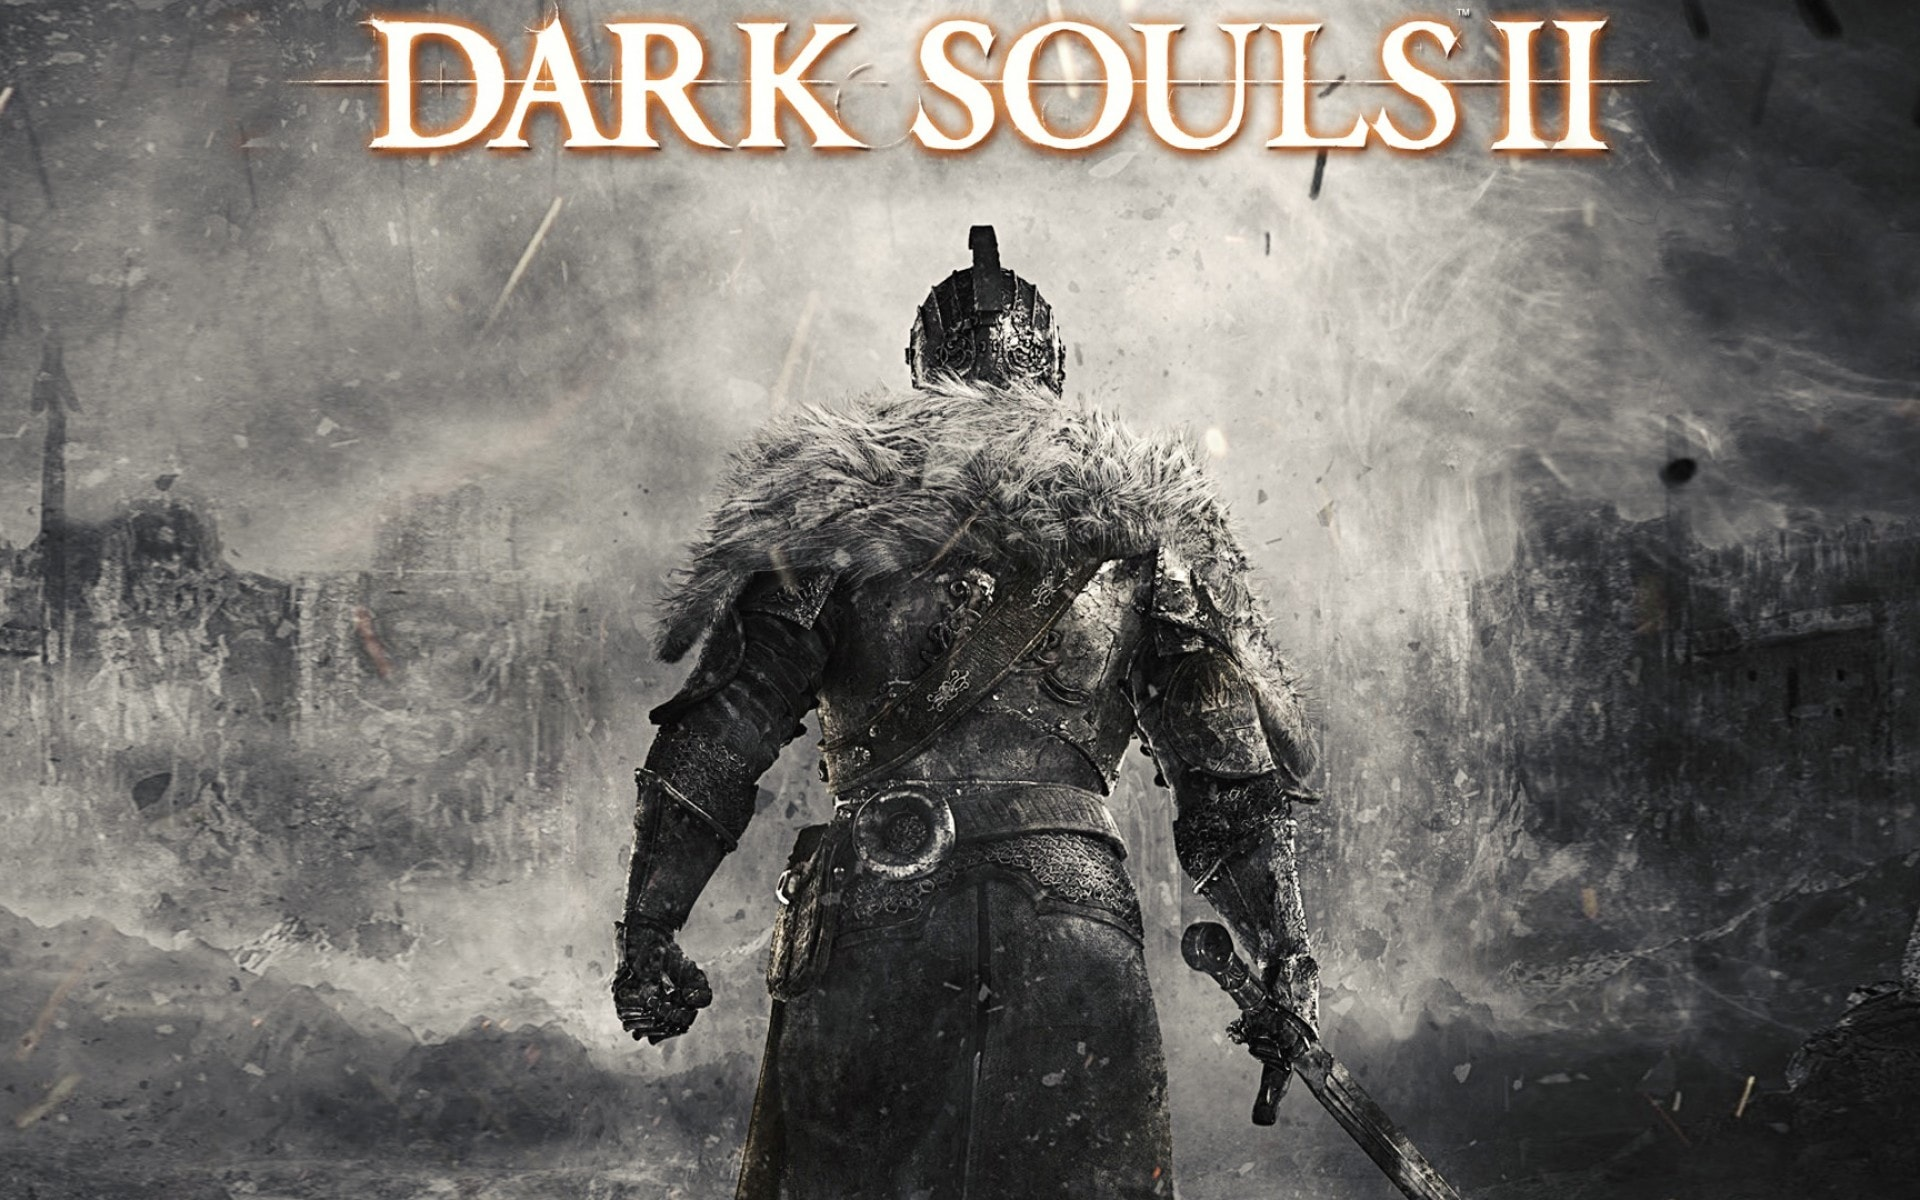 Dark Souls 2 HQ wallpapers